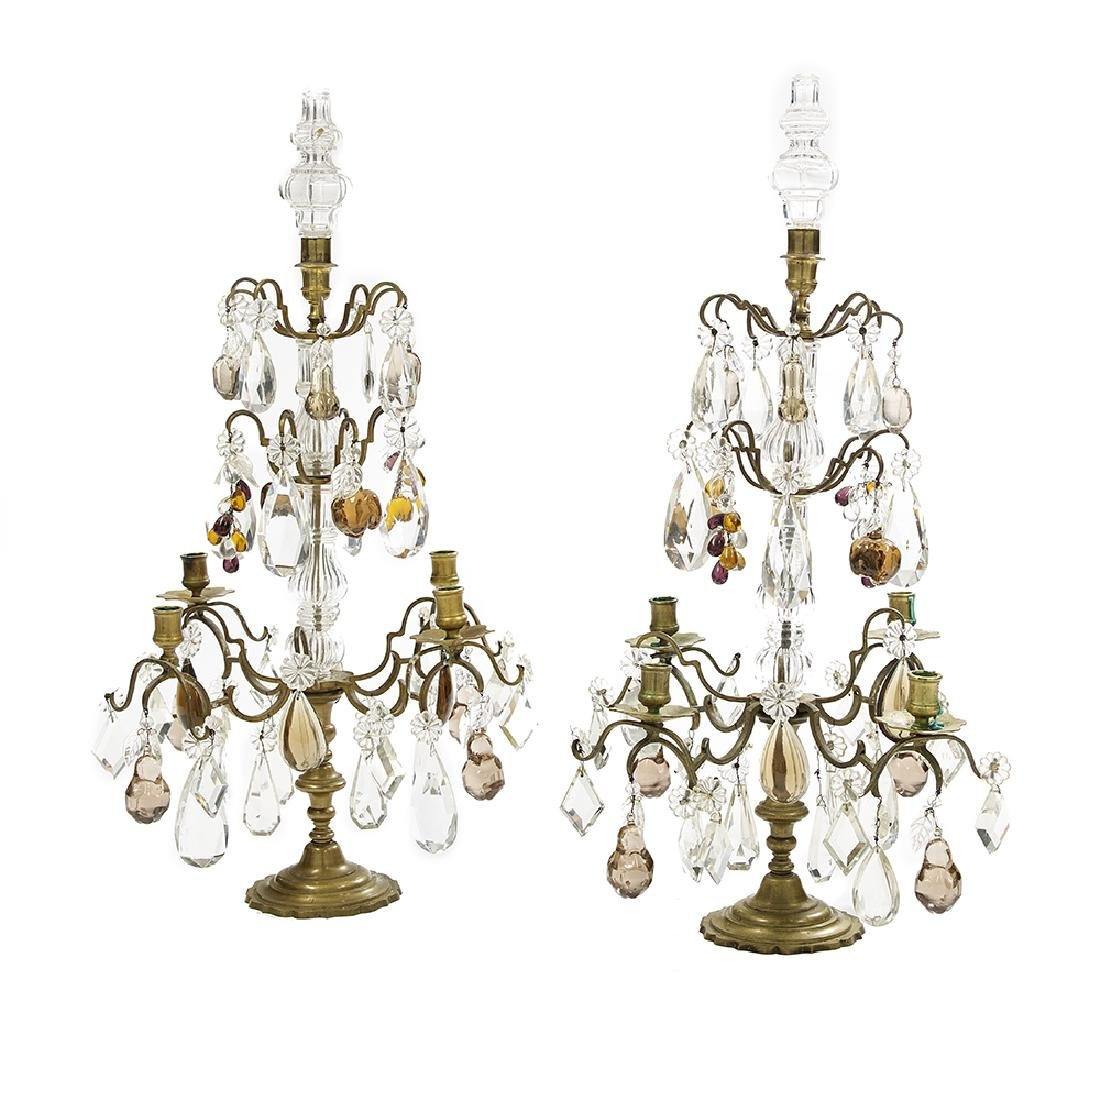 Pair of Louis XIV-Style Candelabra